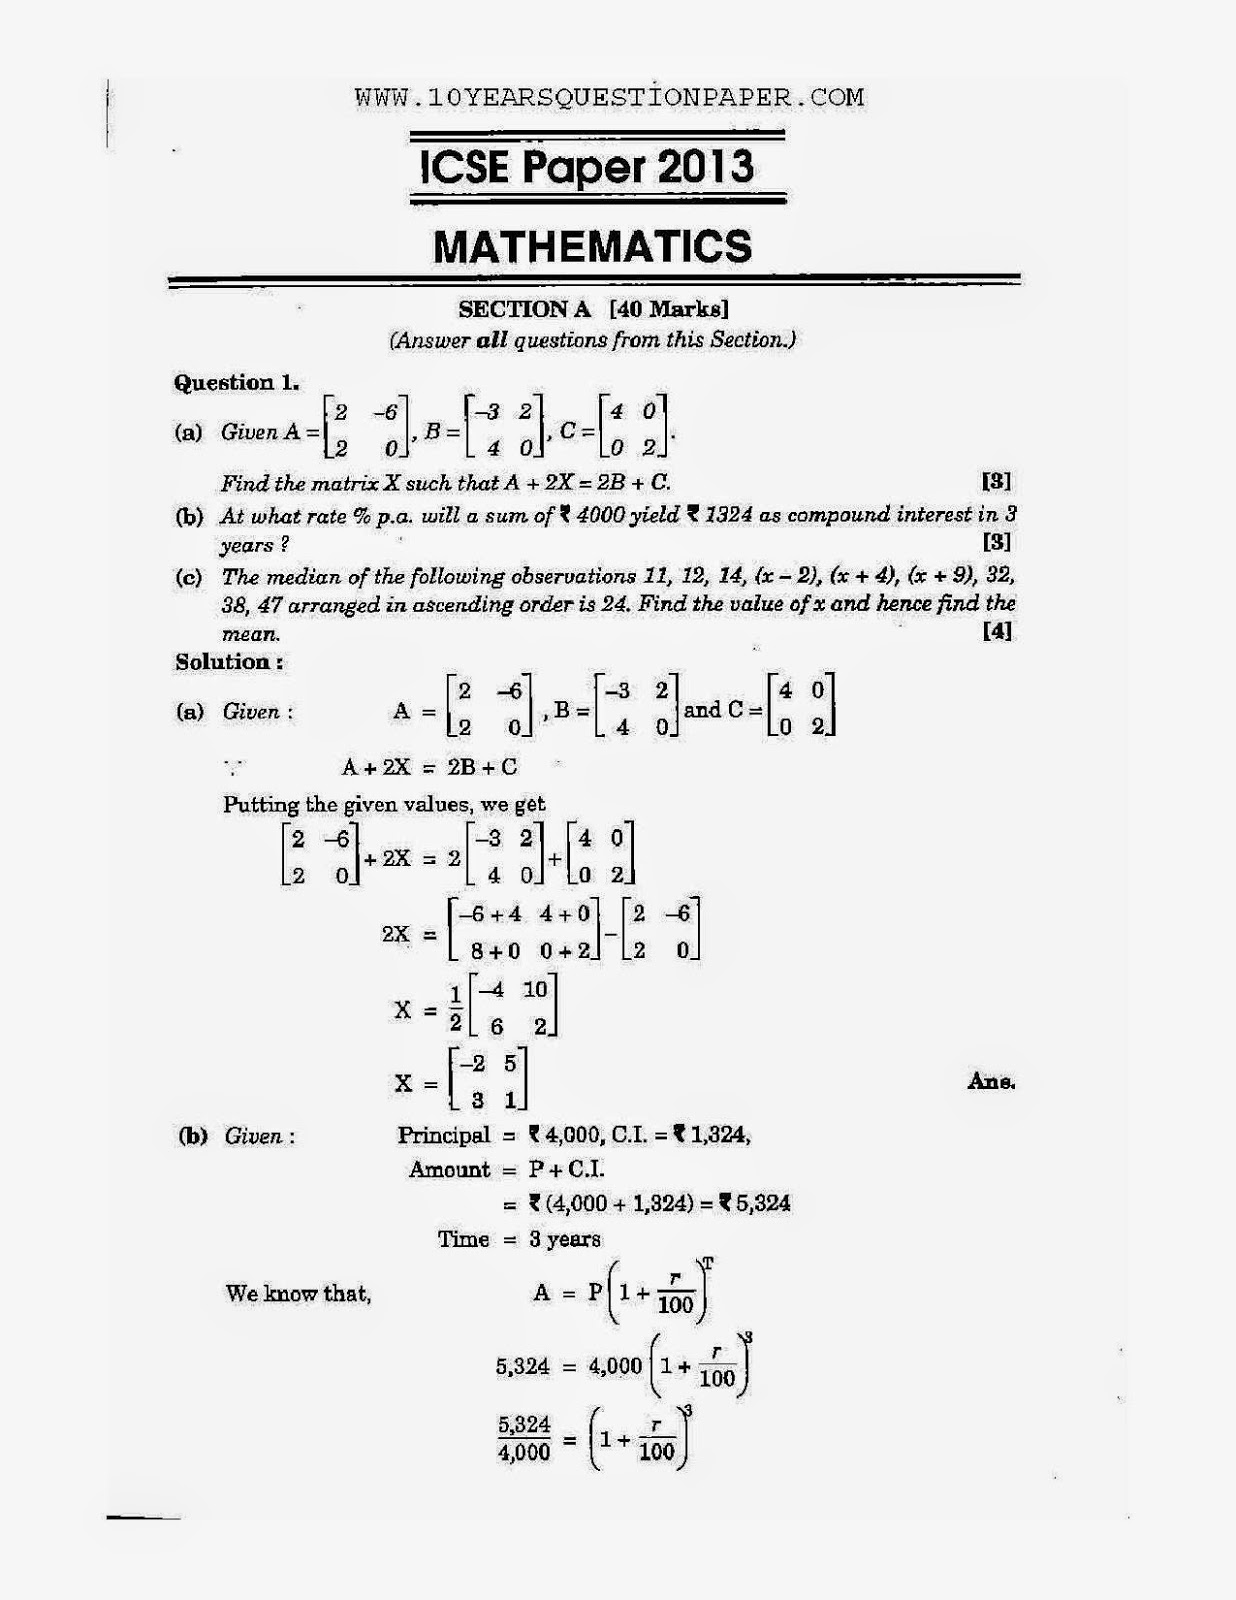 icse class 10th mathematics solved question paper 2013